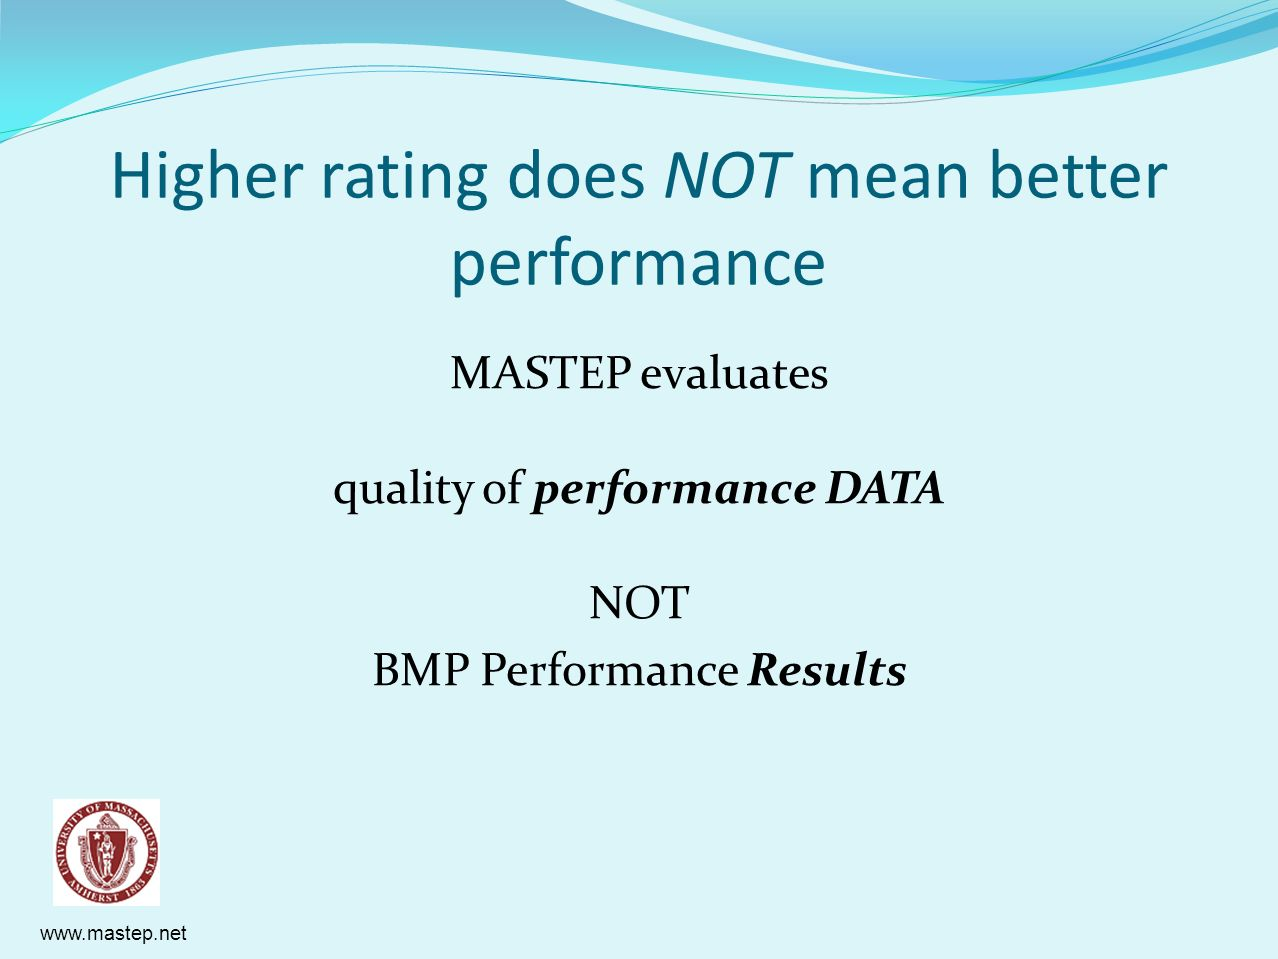 www.mastep.net Higher rating does NOT mean better performance MASTEP evaluates quality of performance DATA NOT BMP Performance Results